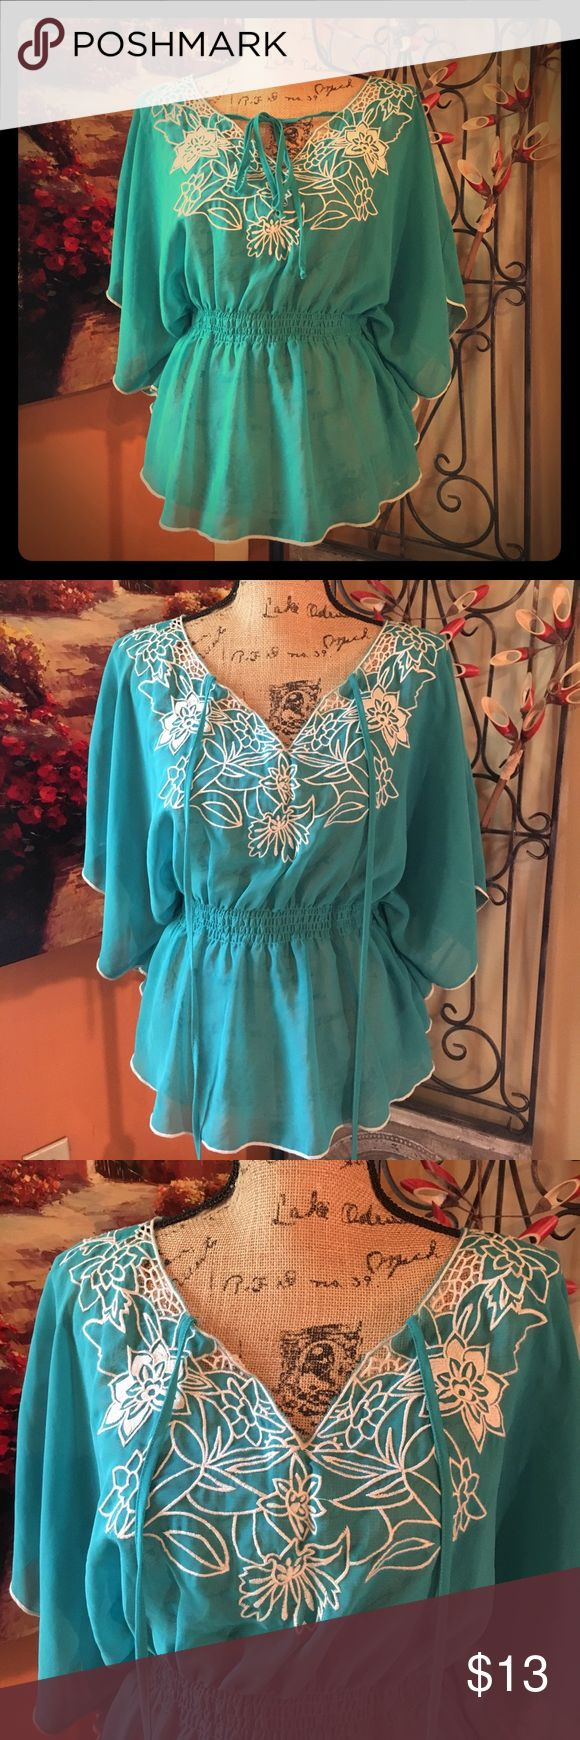 "Rhapsody Tunic Sheer Turquoise polyester Tunic with cream floral stitched design & sleeve / bottom trim, long collar ties, cinched waist band & batwing sleeves with side drape. Sz XL in great condition, 38""-40"" bust with lots of extra room with loose drape, 23"" length rhapsody Tops Tunics"